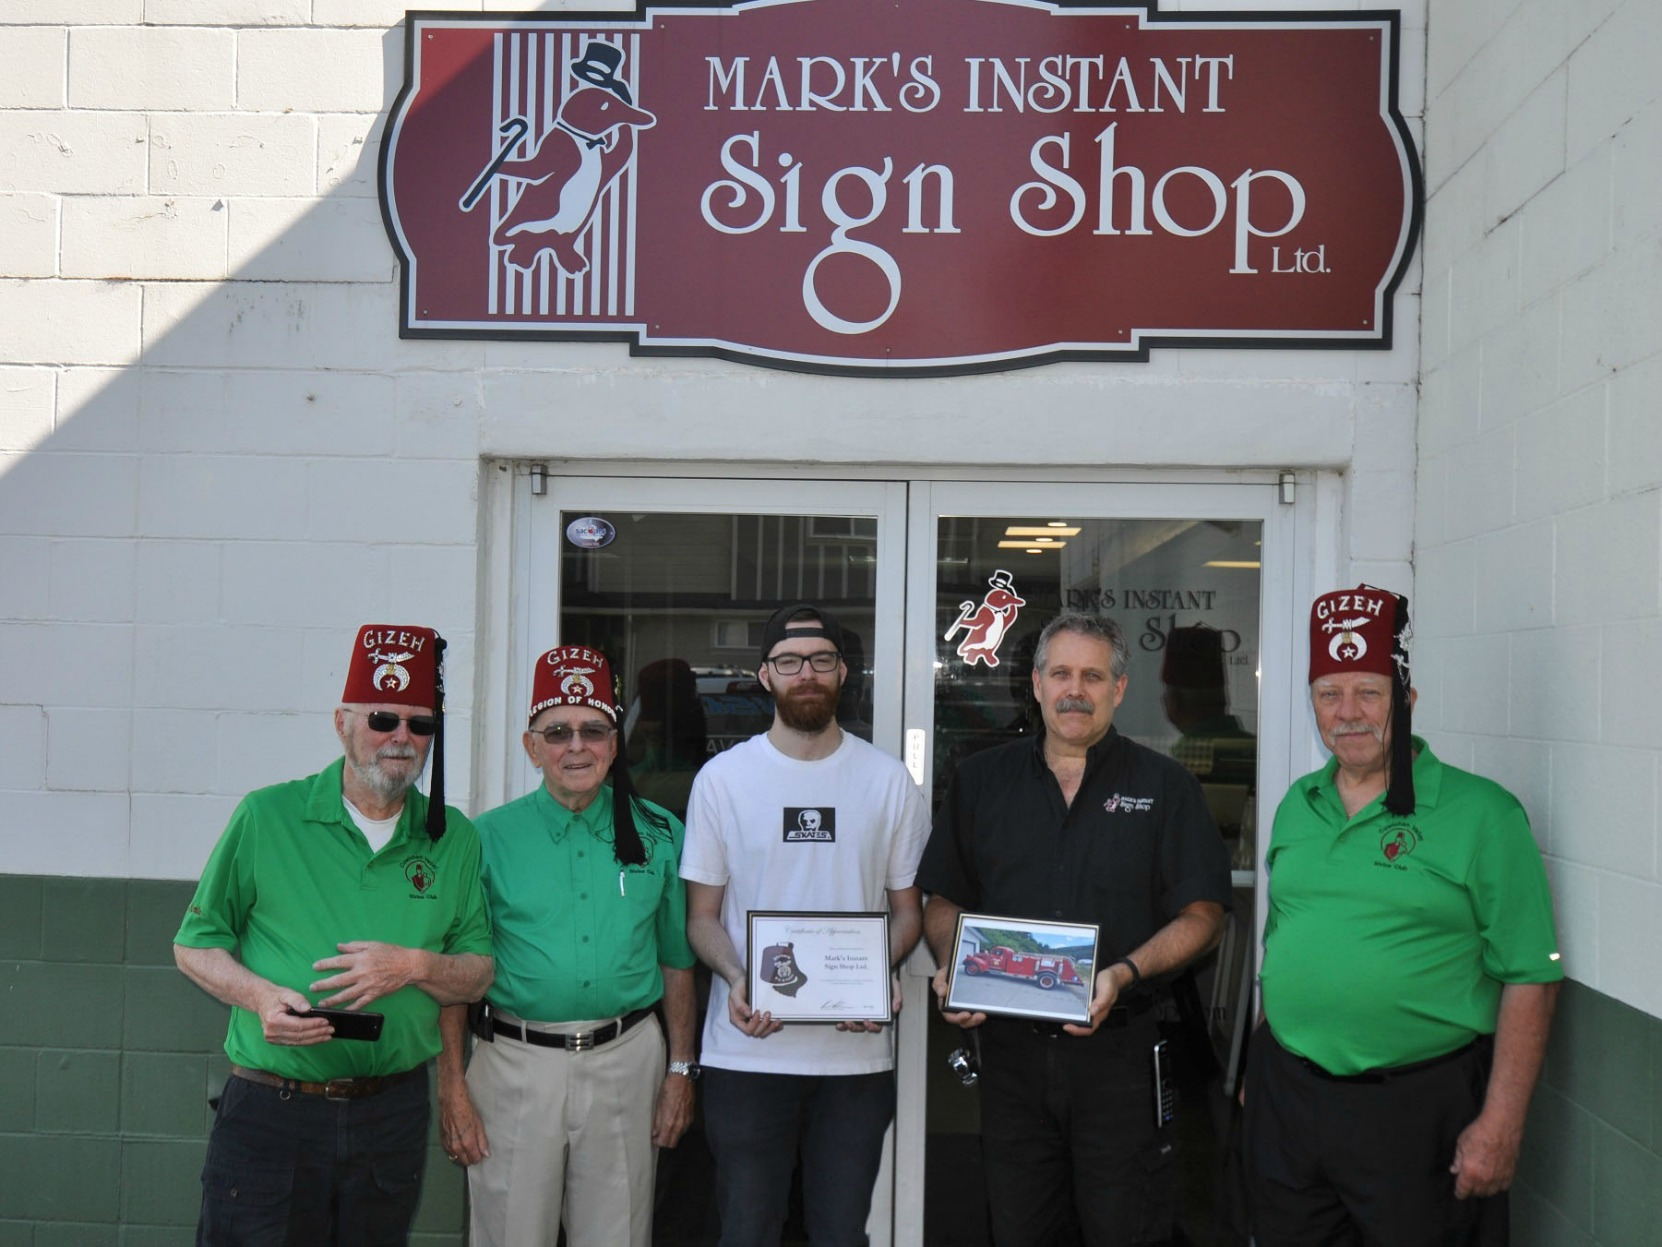 Cowichan valley Shrine Club members Monte Engelson, Brian Nicol and Pat Ffyfe present Certificate of Appreciation to the owners of Mark's Instant Sign Shop, Duncan, B.C. on 26 July 2017 (photo by Cowichan Valley Shrine Club)